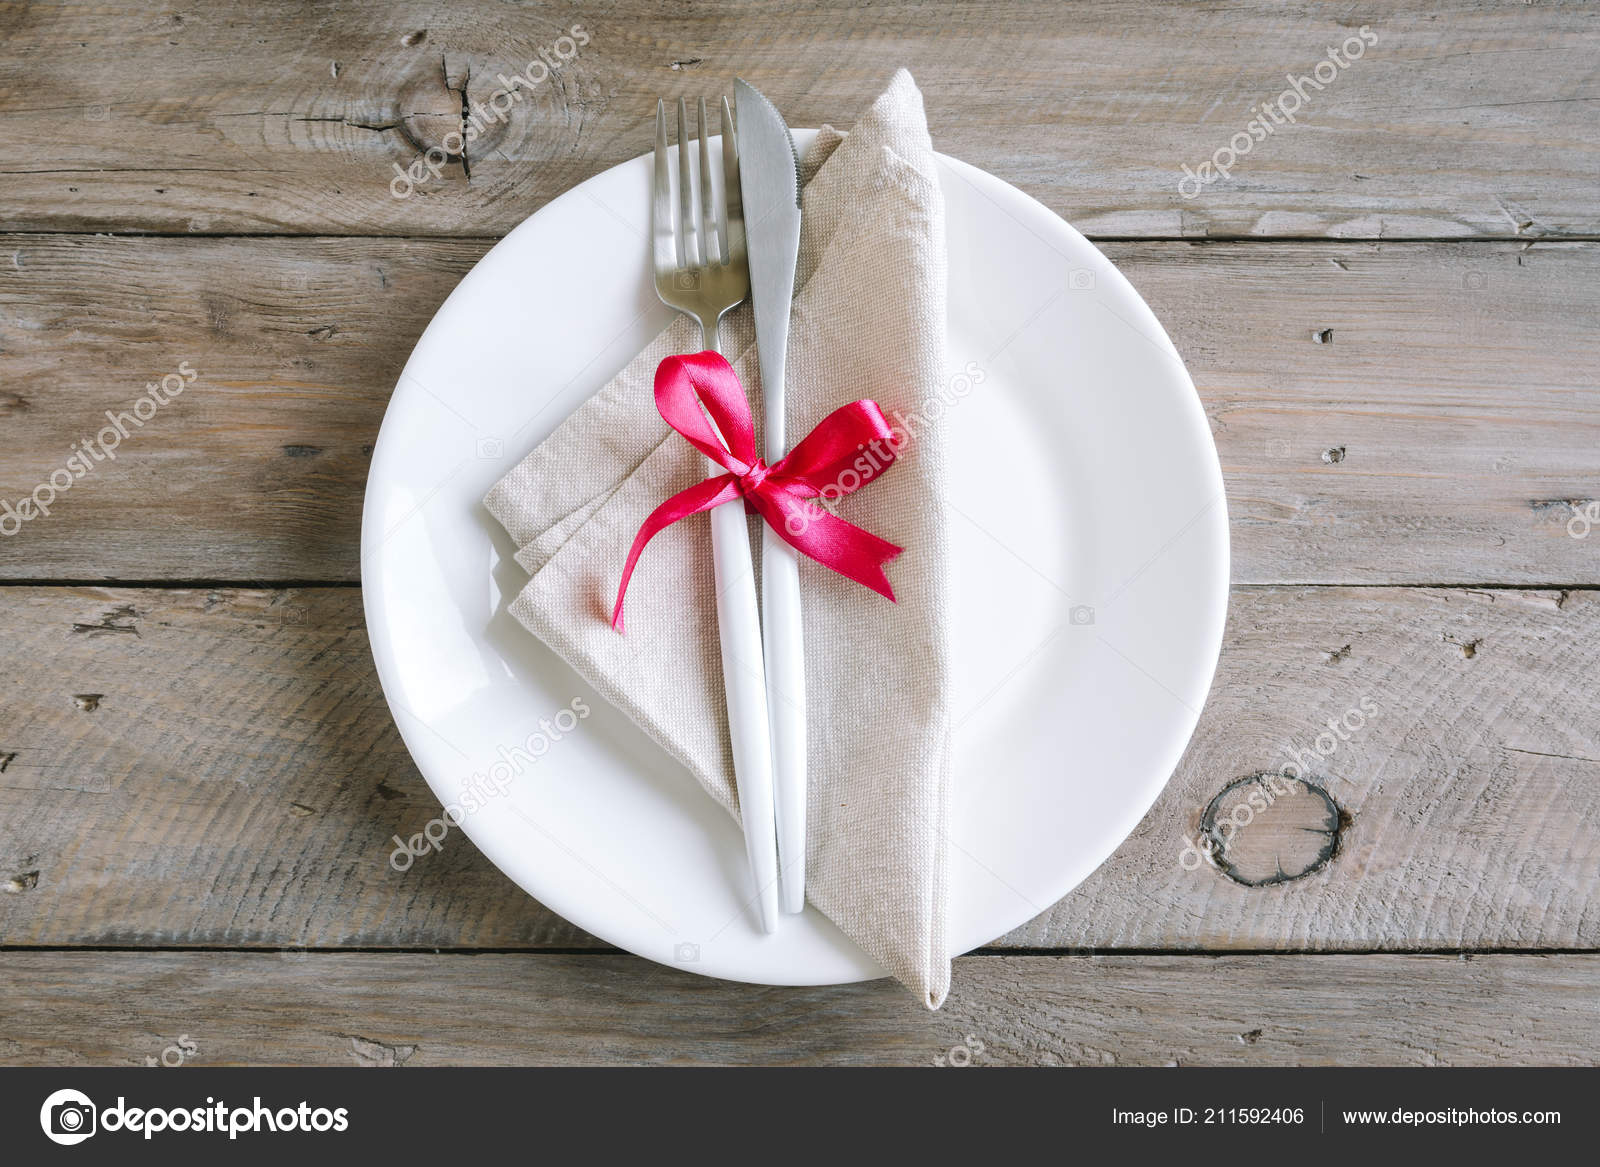 Romantic Table Setting White Plate Modern Cutlery Red Ribbon Wooden